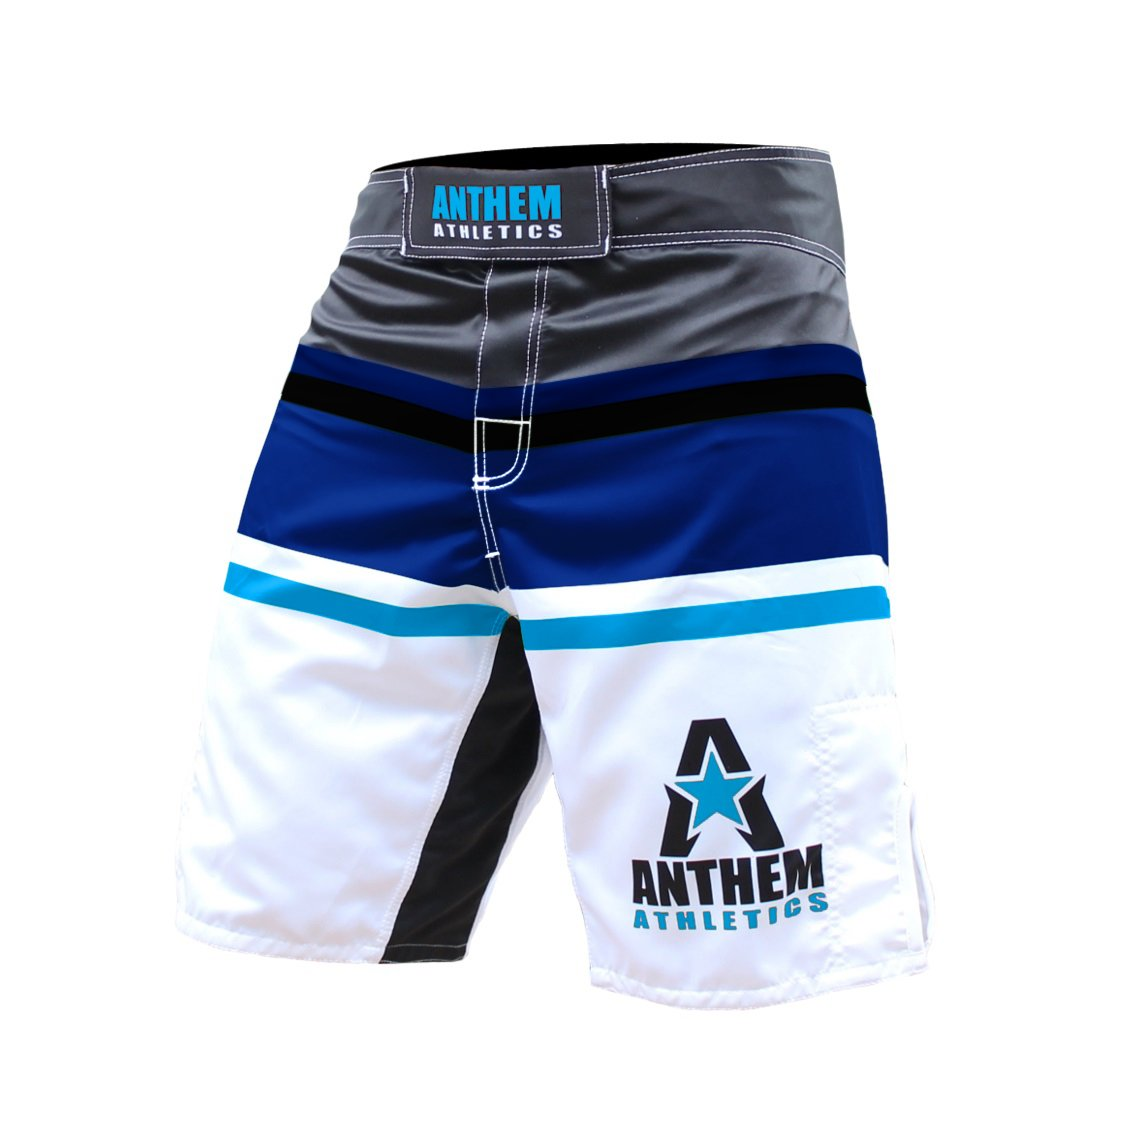 Anthem Athletics Thai Boxing Shorts Black//Navy//Blue Size S